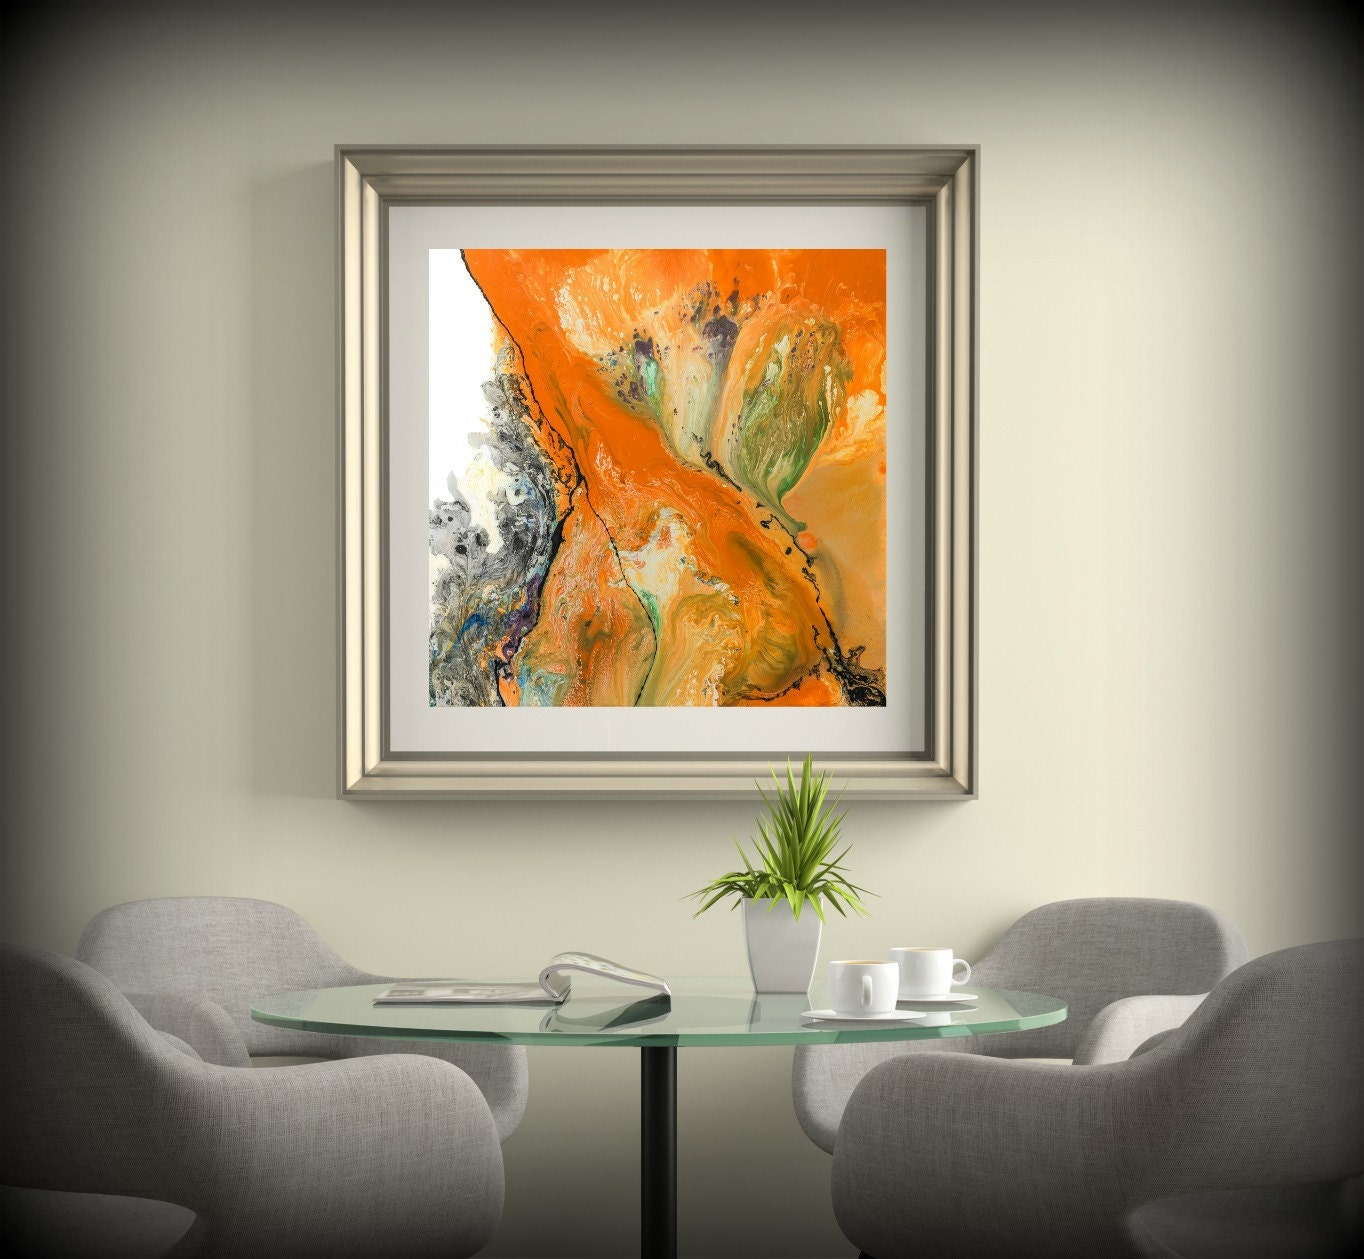 Living room decor square wall decor orange wall art dining for Room decor art